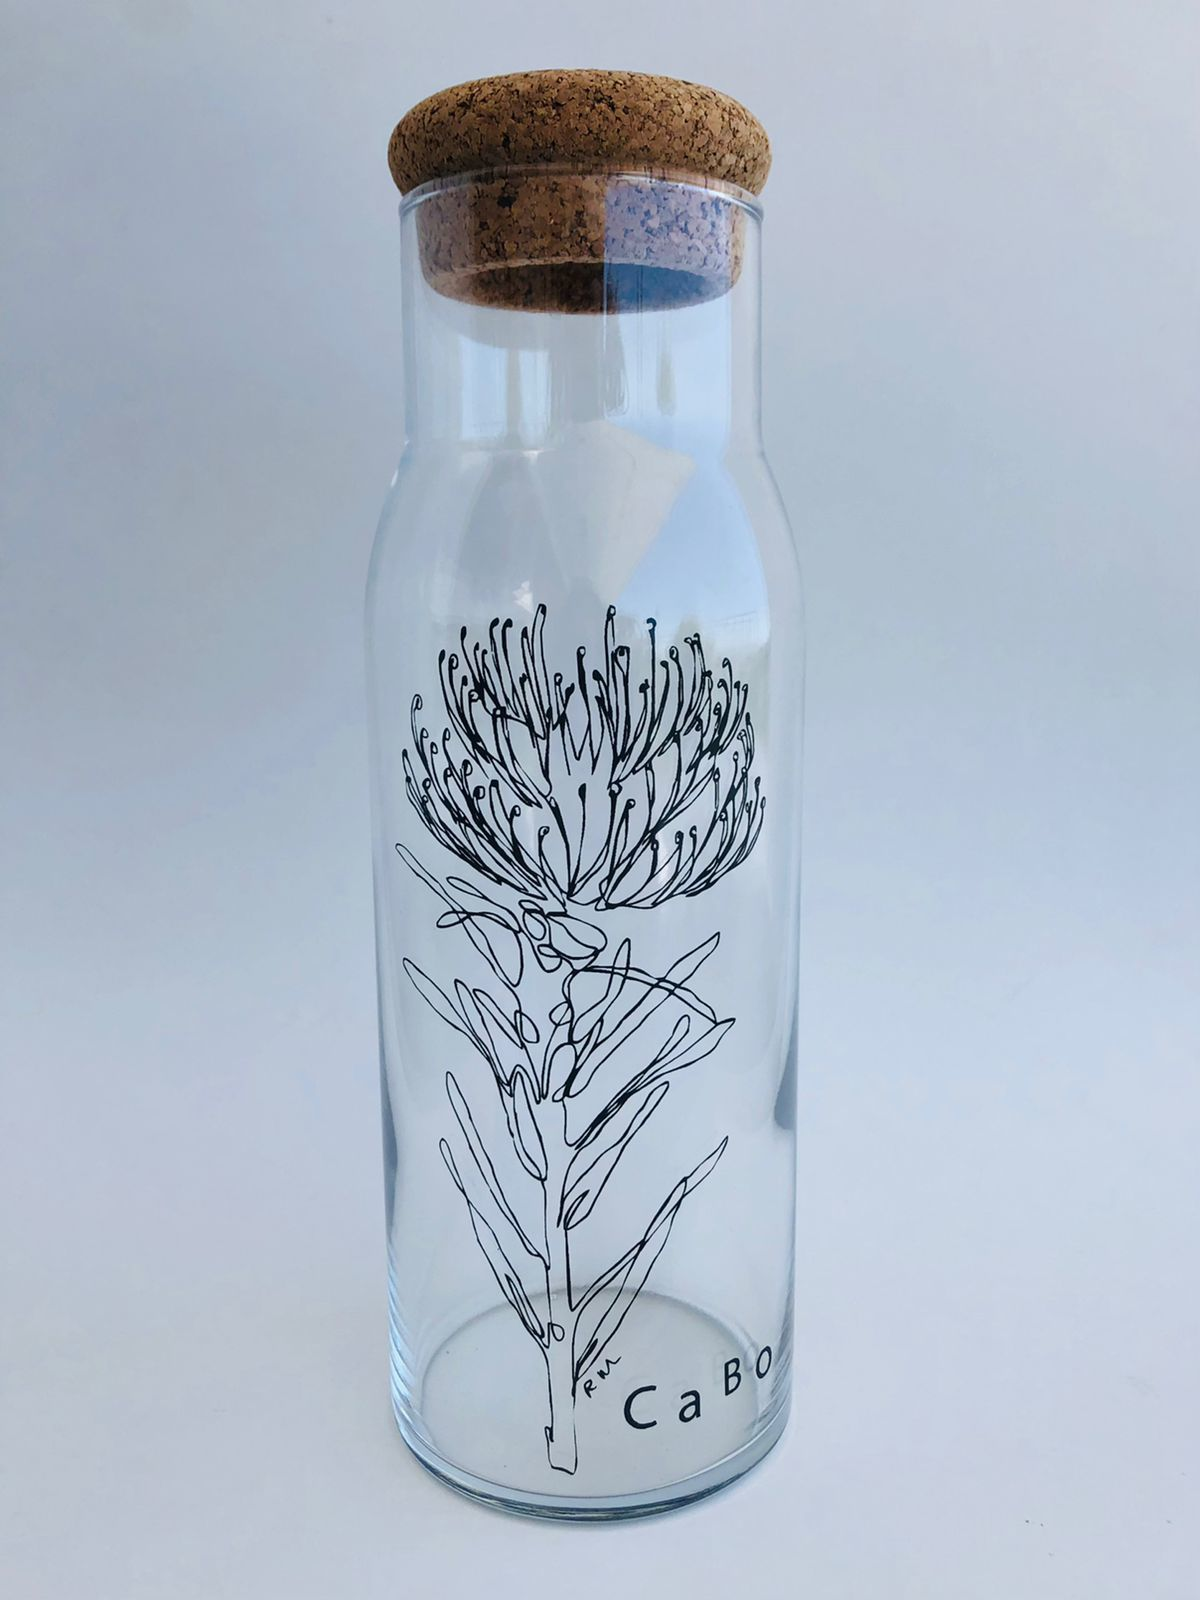 A beautiful vessel for water, or anything you decide.